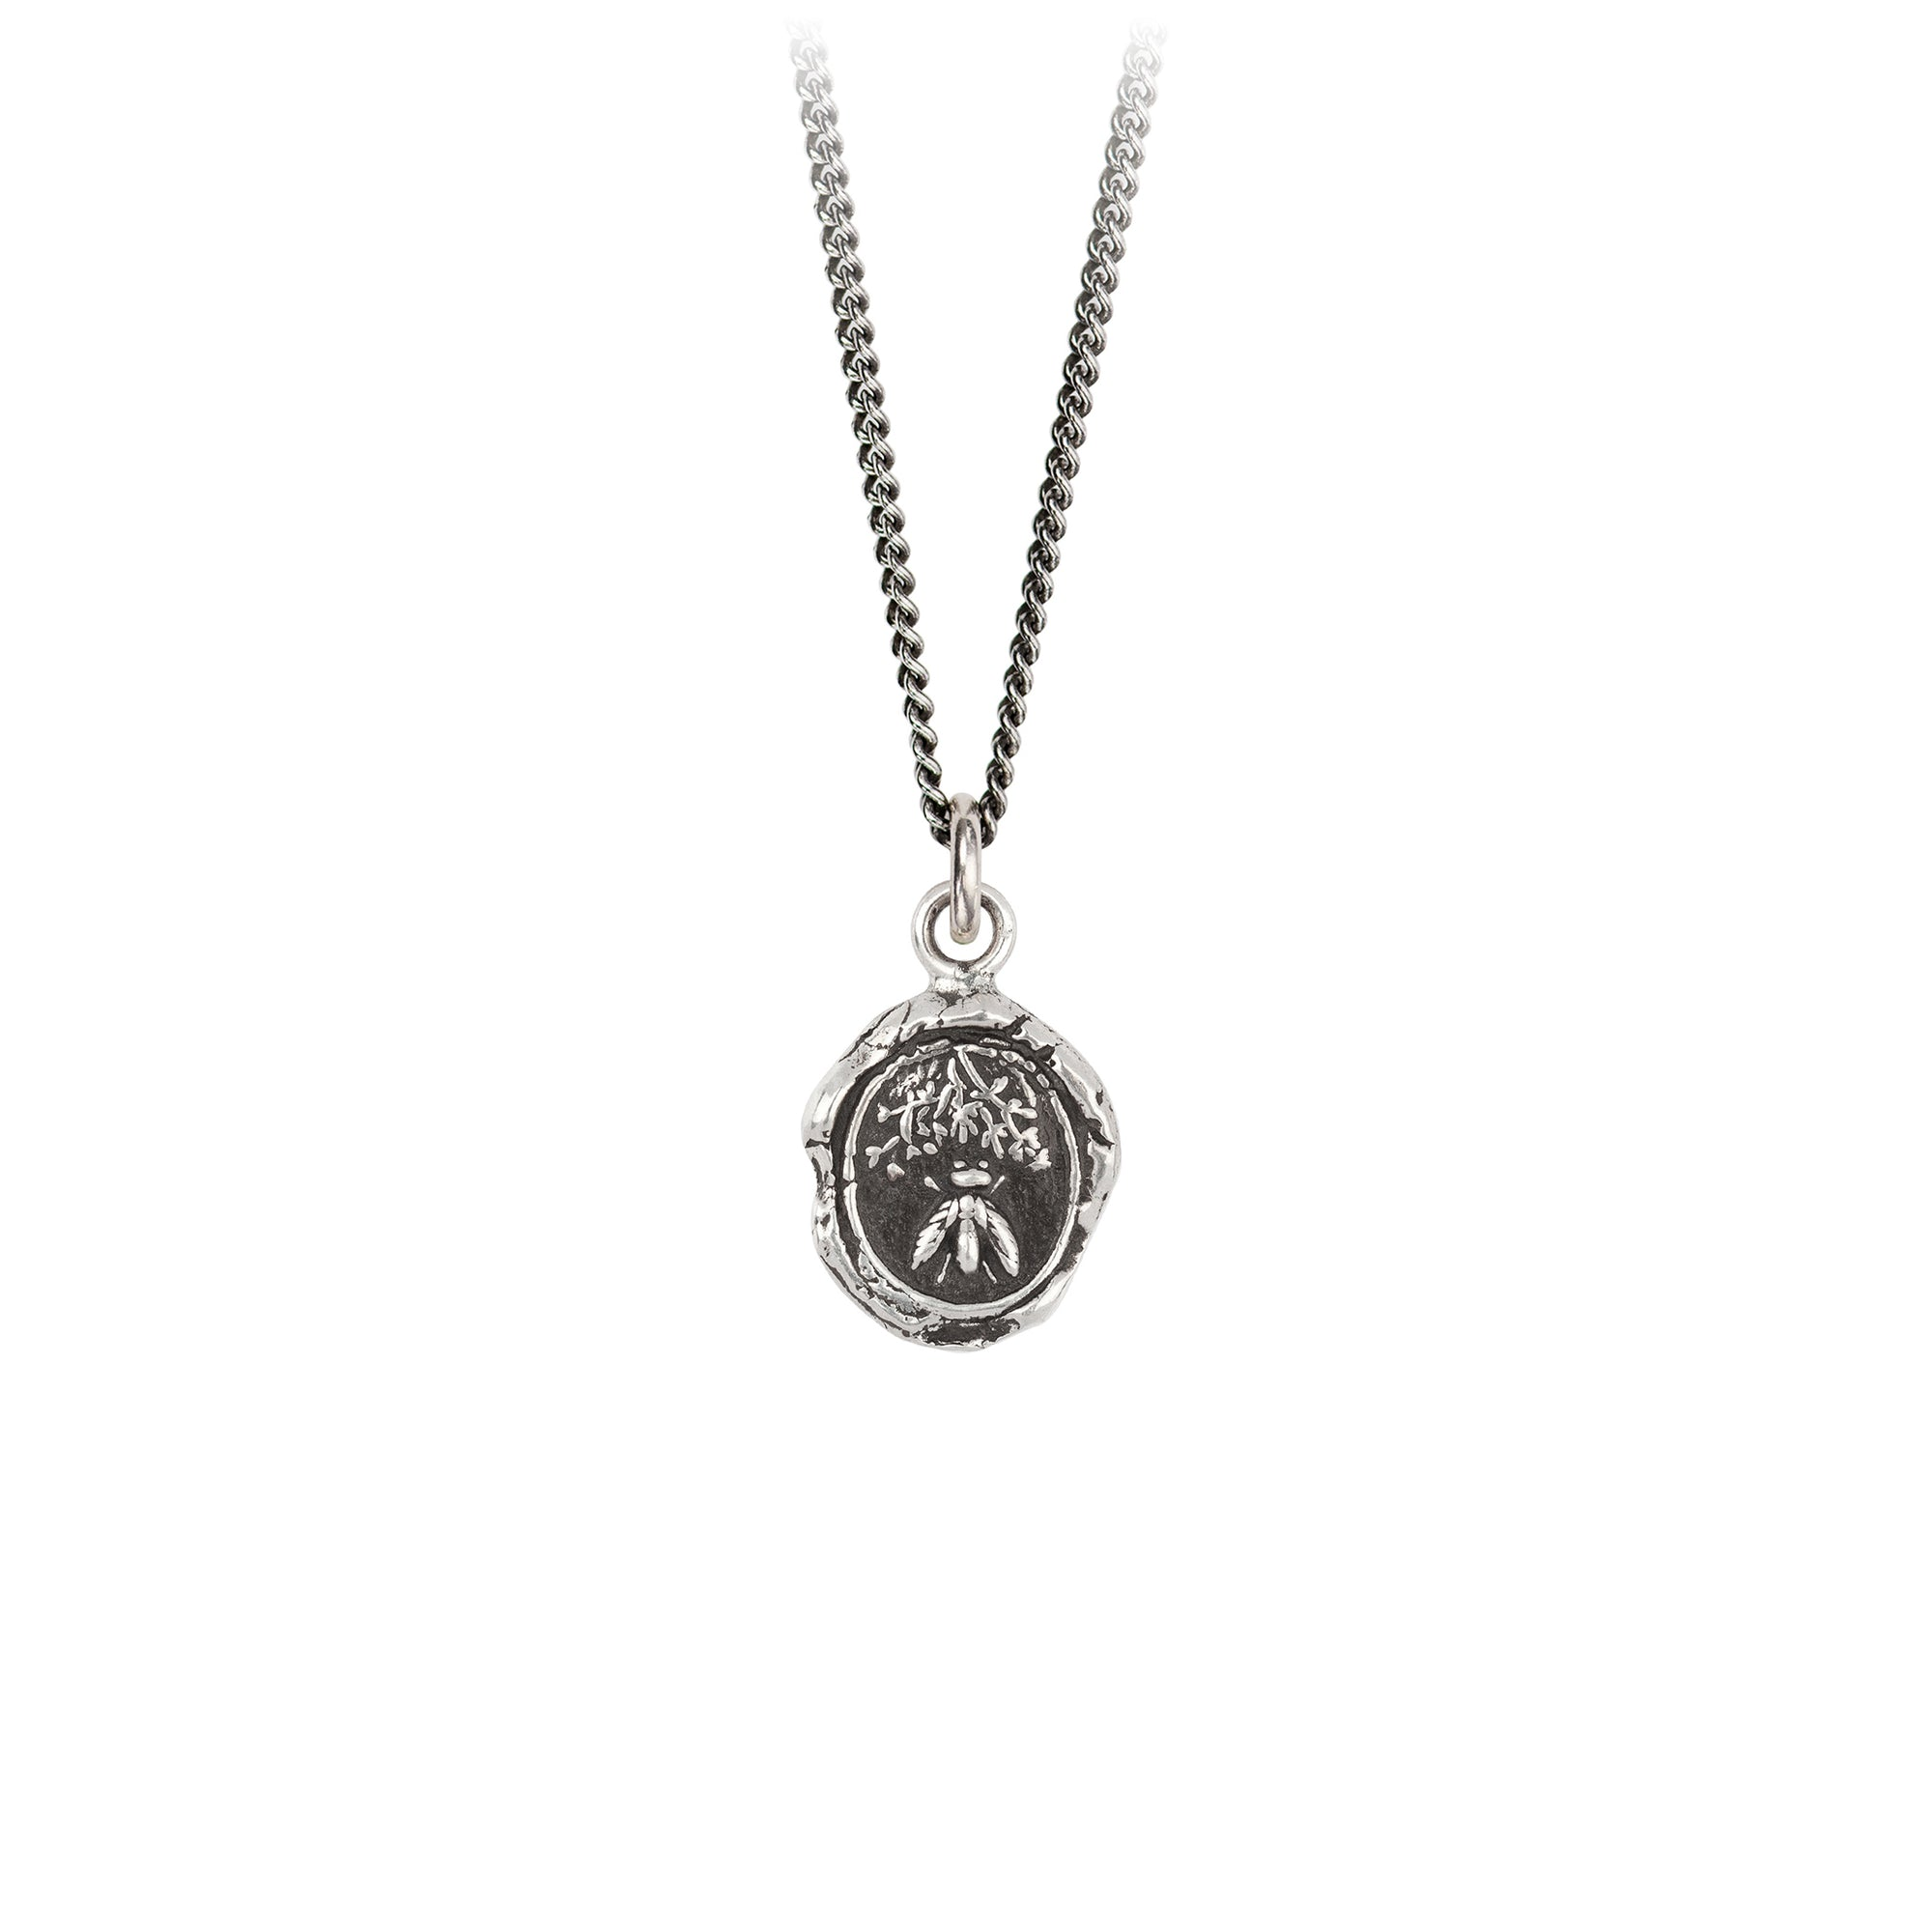 Pyrrha Tireless Talisman Necklace Fine Curb Chain Silver